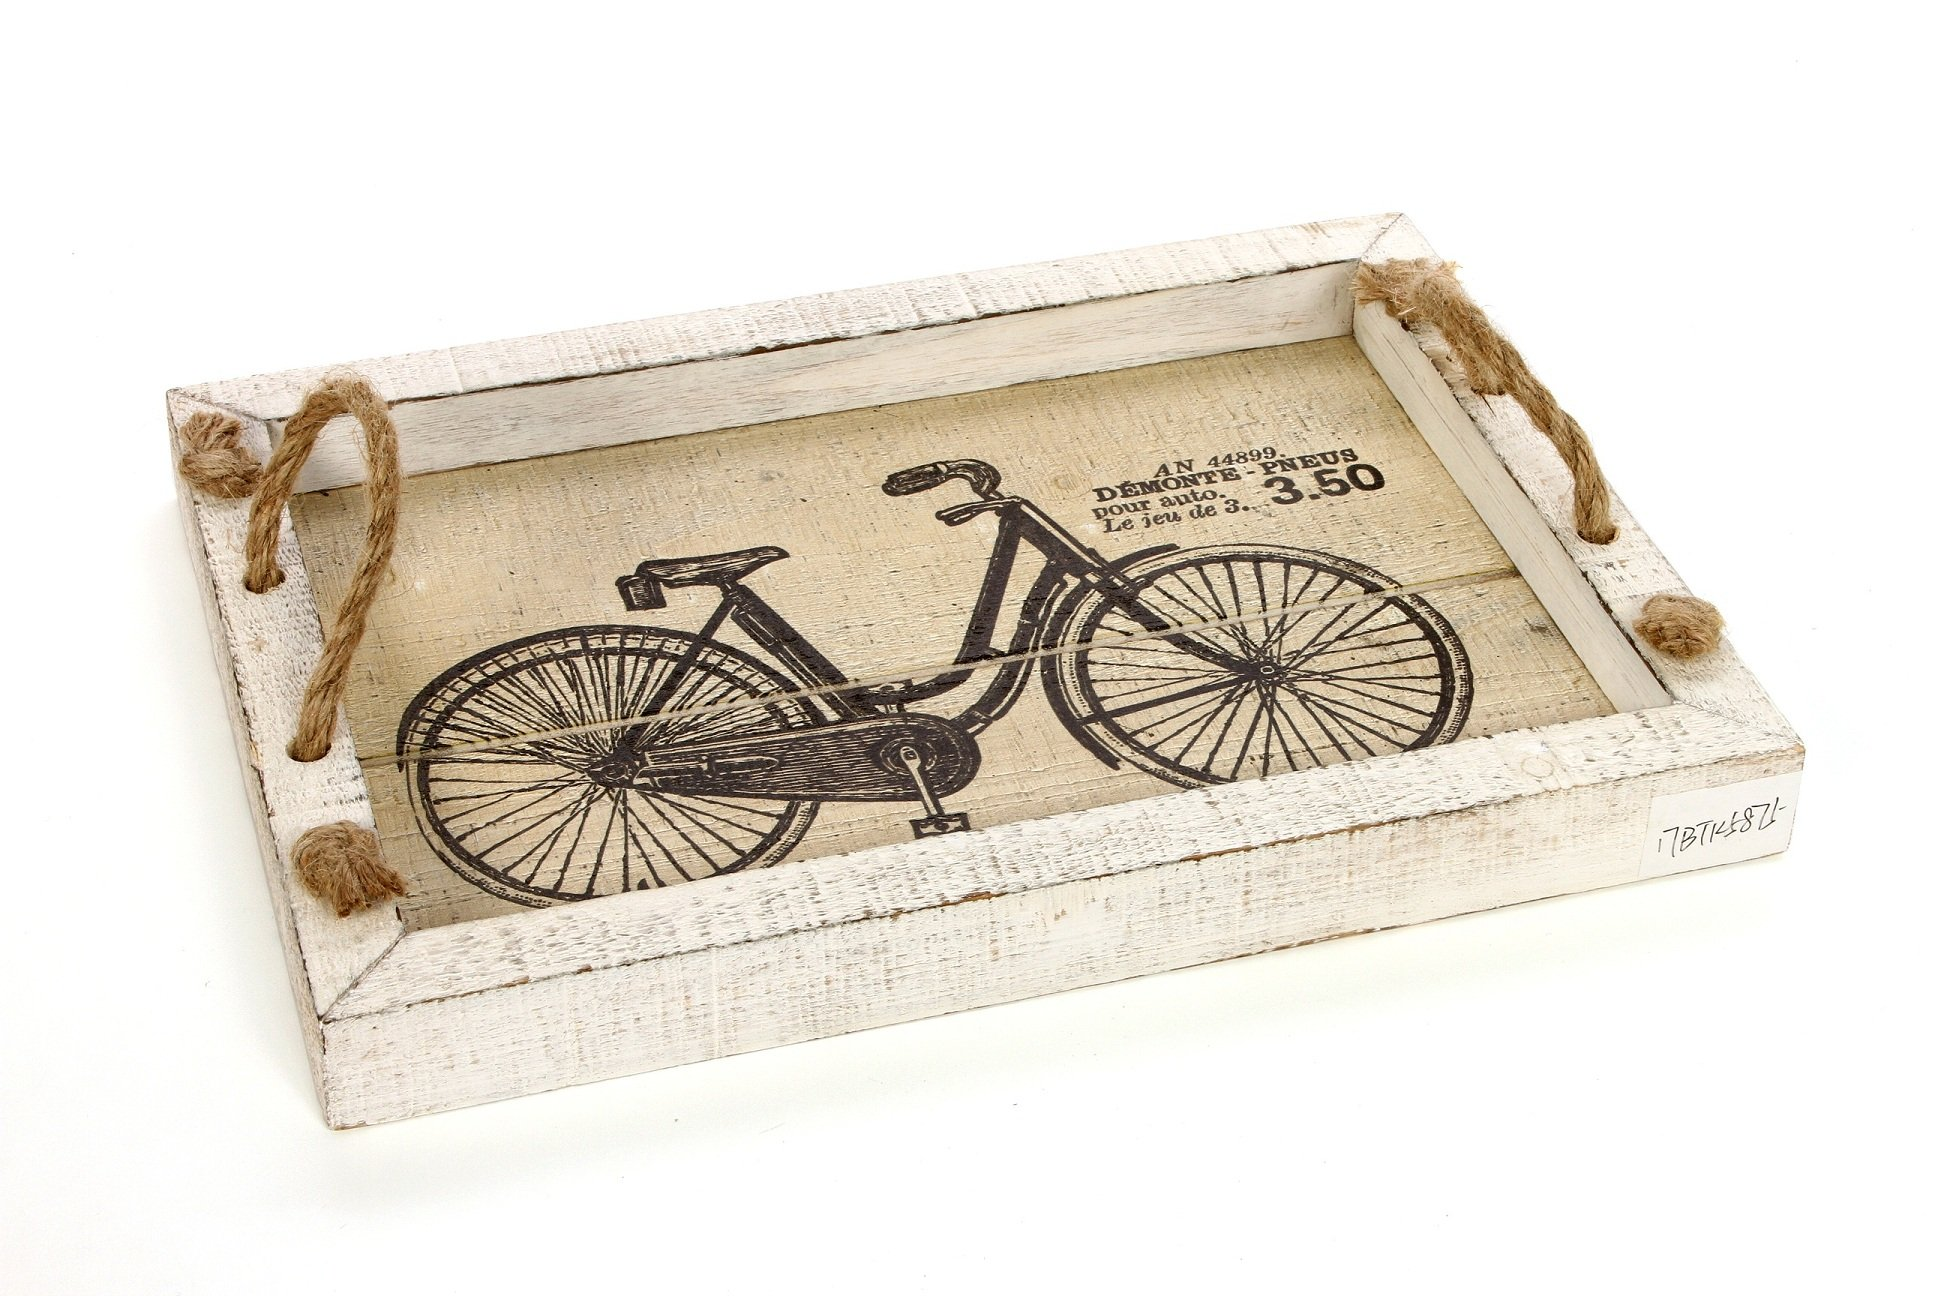 Hosley 14'' Long, Decorative Tabletop Bicycle Image Tray. Ideal Gift for Wedding, Home, Party Favor, Spa, Reiki, Meditation, Bathroom Settings O9